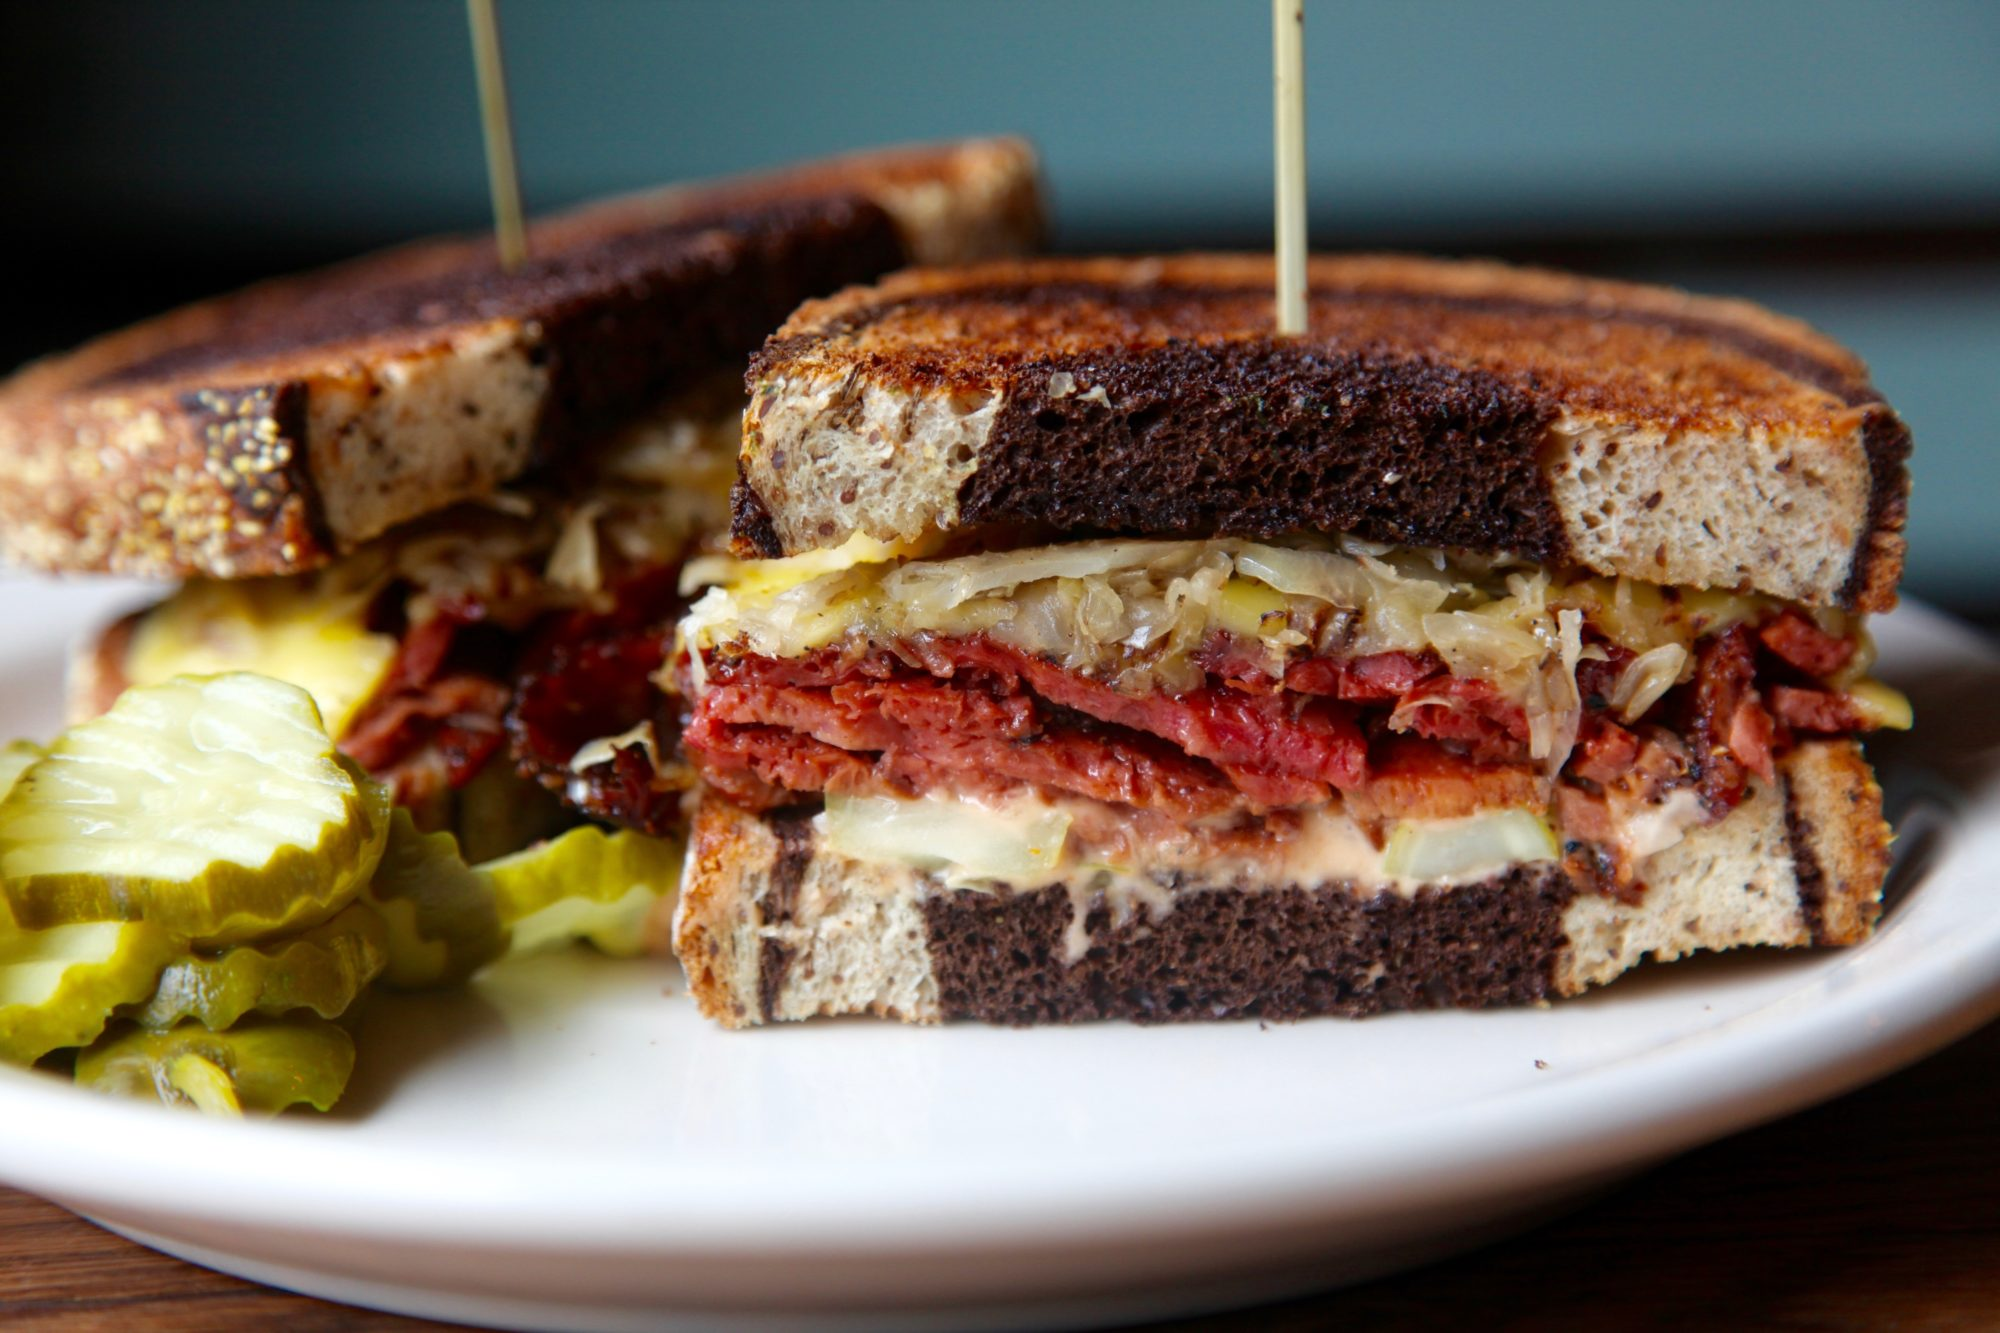 Pastrami-Reuben3-photo-credit-Mike-Di-Tota